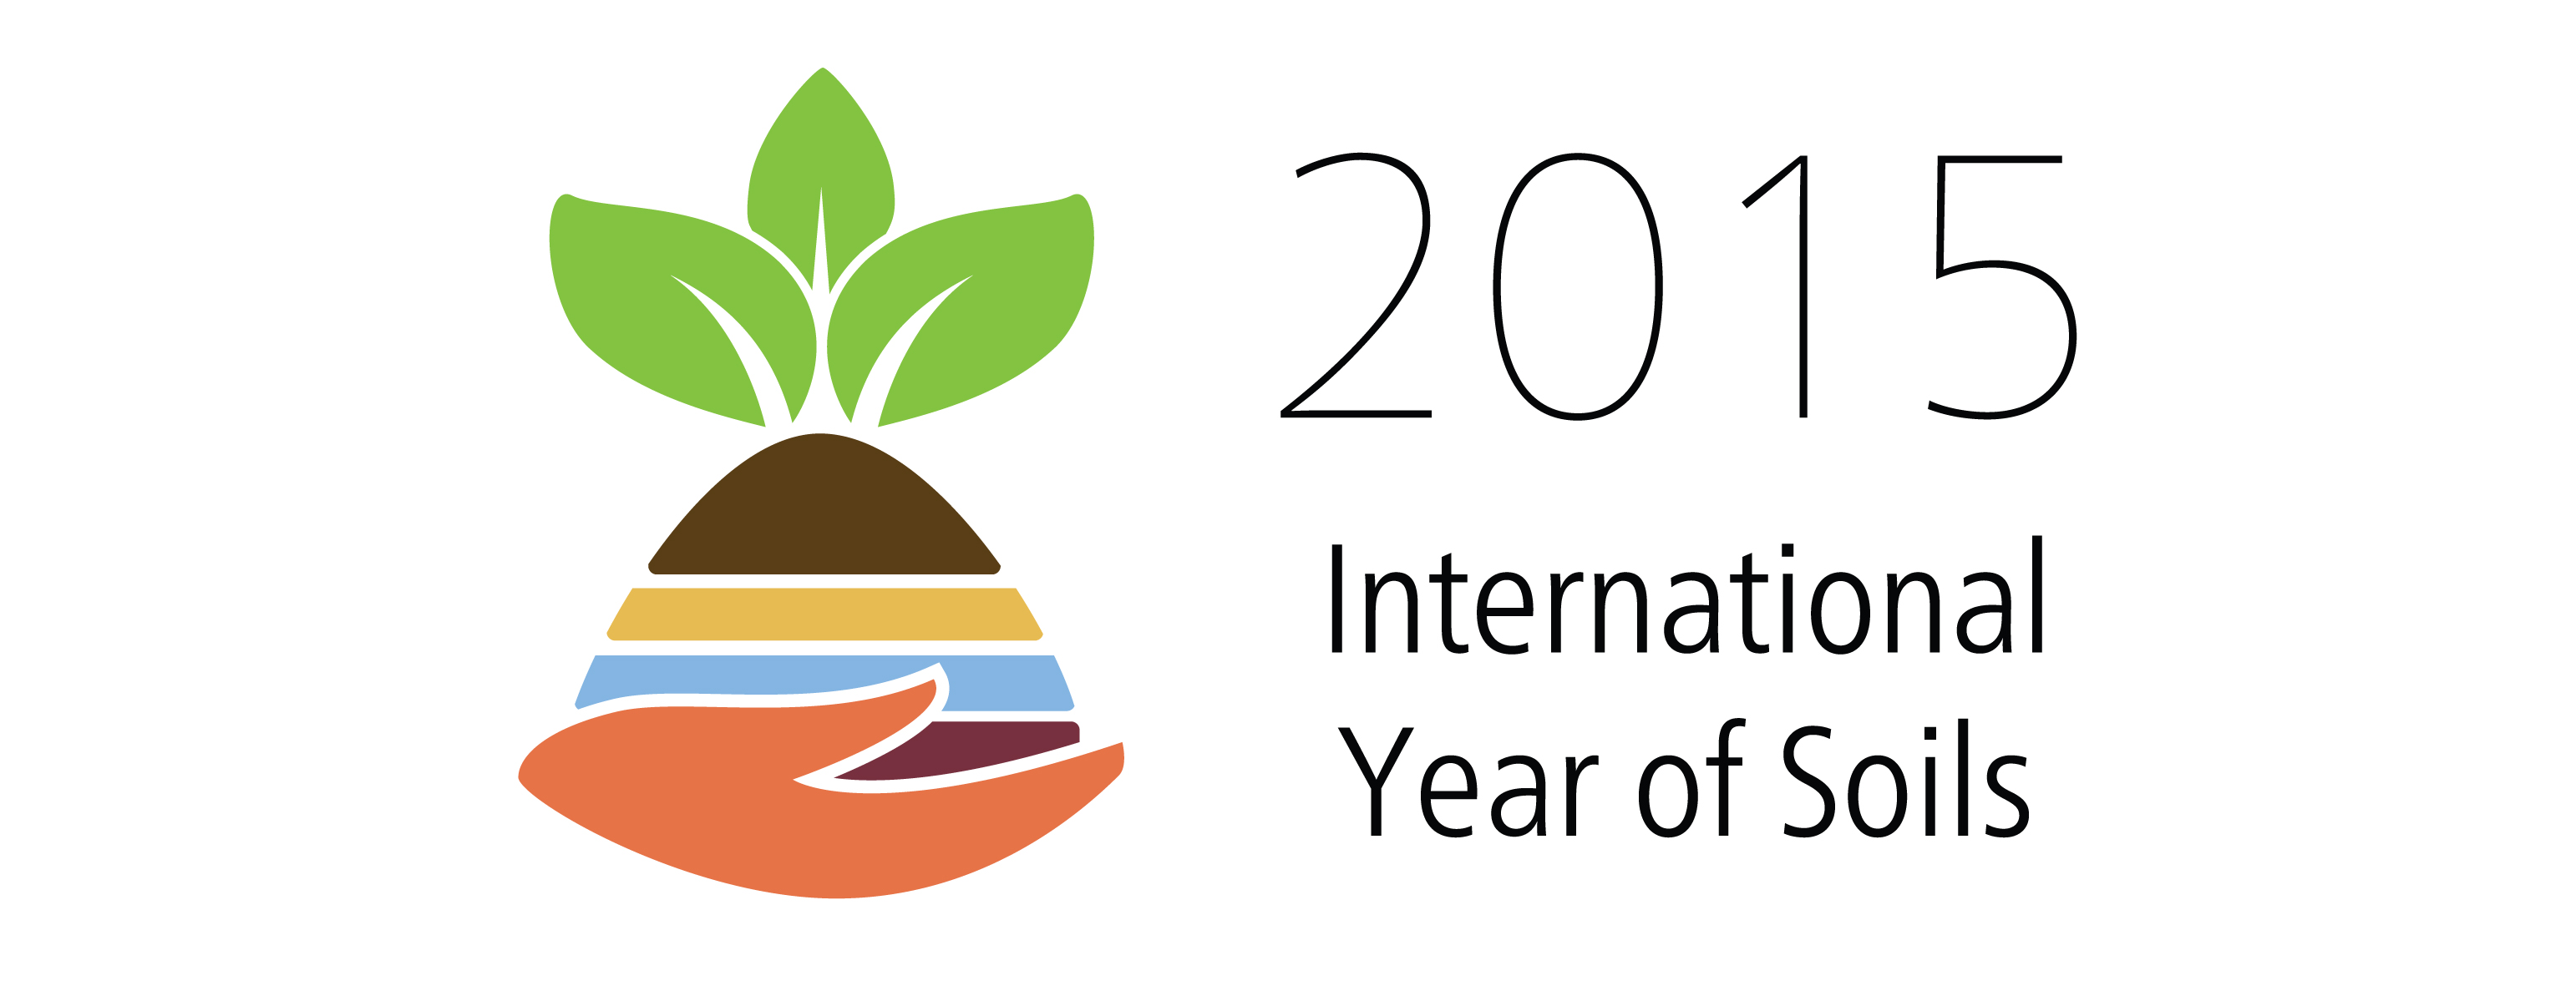 The IYS15 theme provides a rich source of learning related to Science, Geography, Technologies and Sustainability.